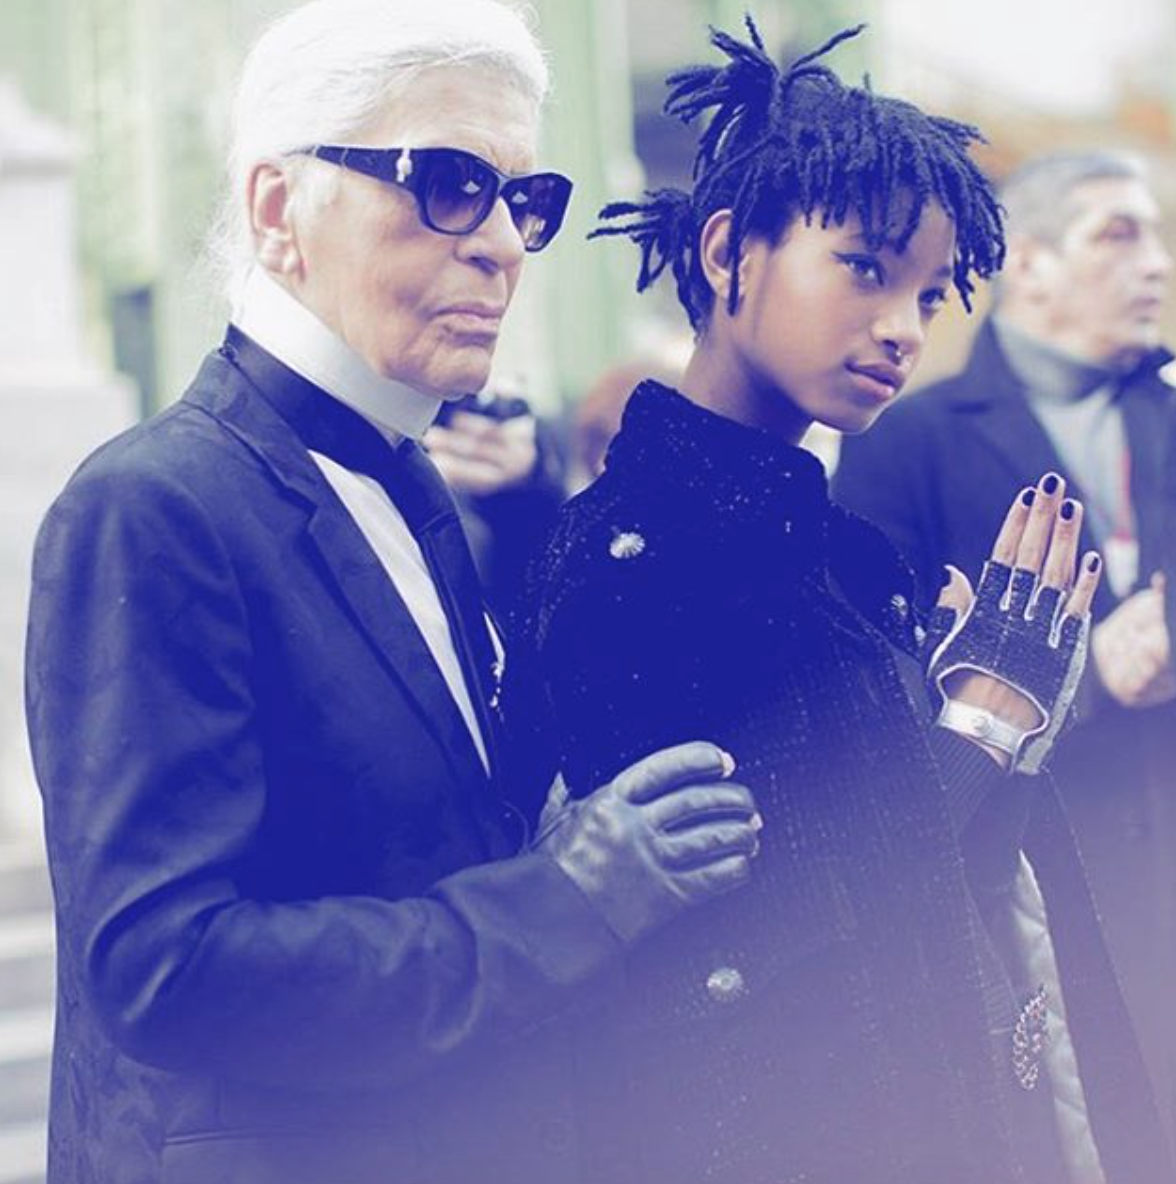 <b>WILLOW SMITH IS CHAN...</b>